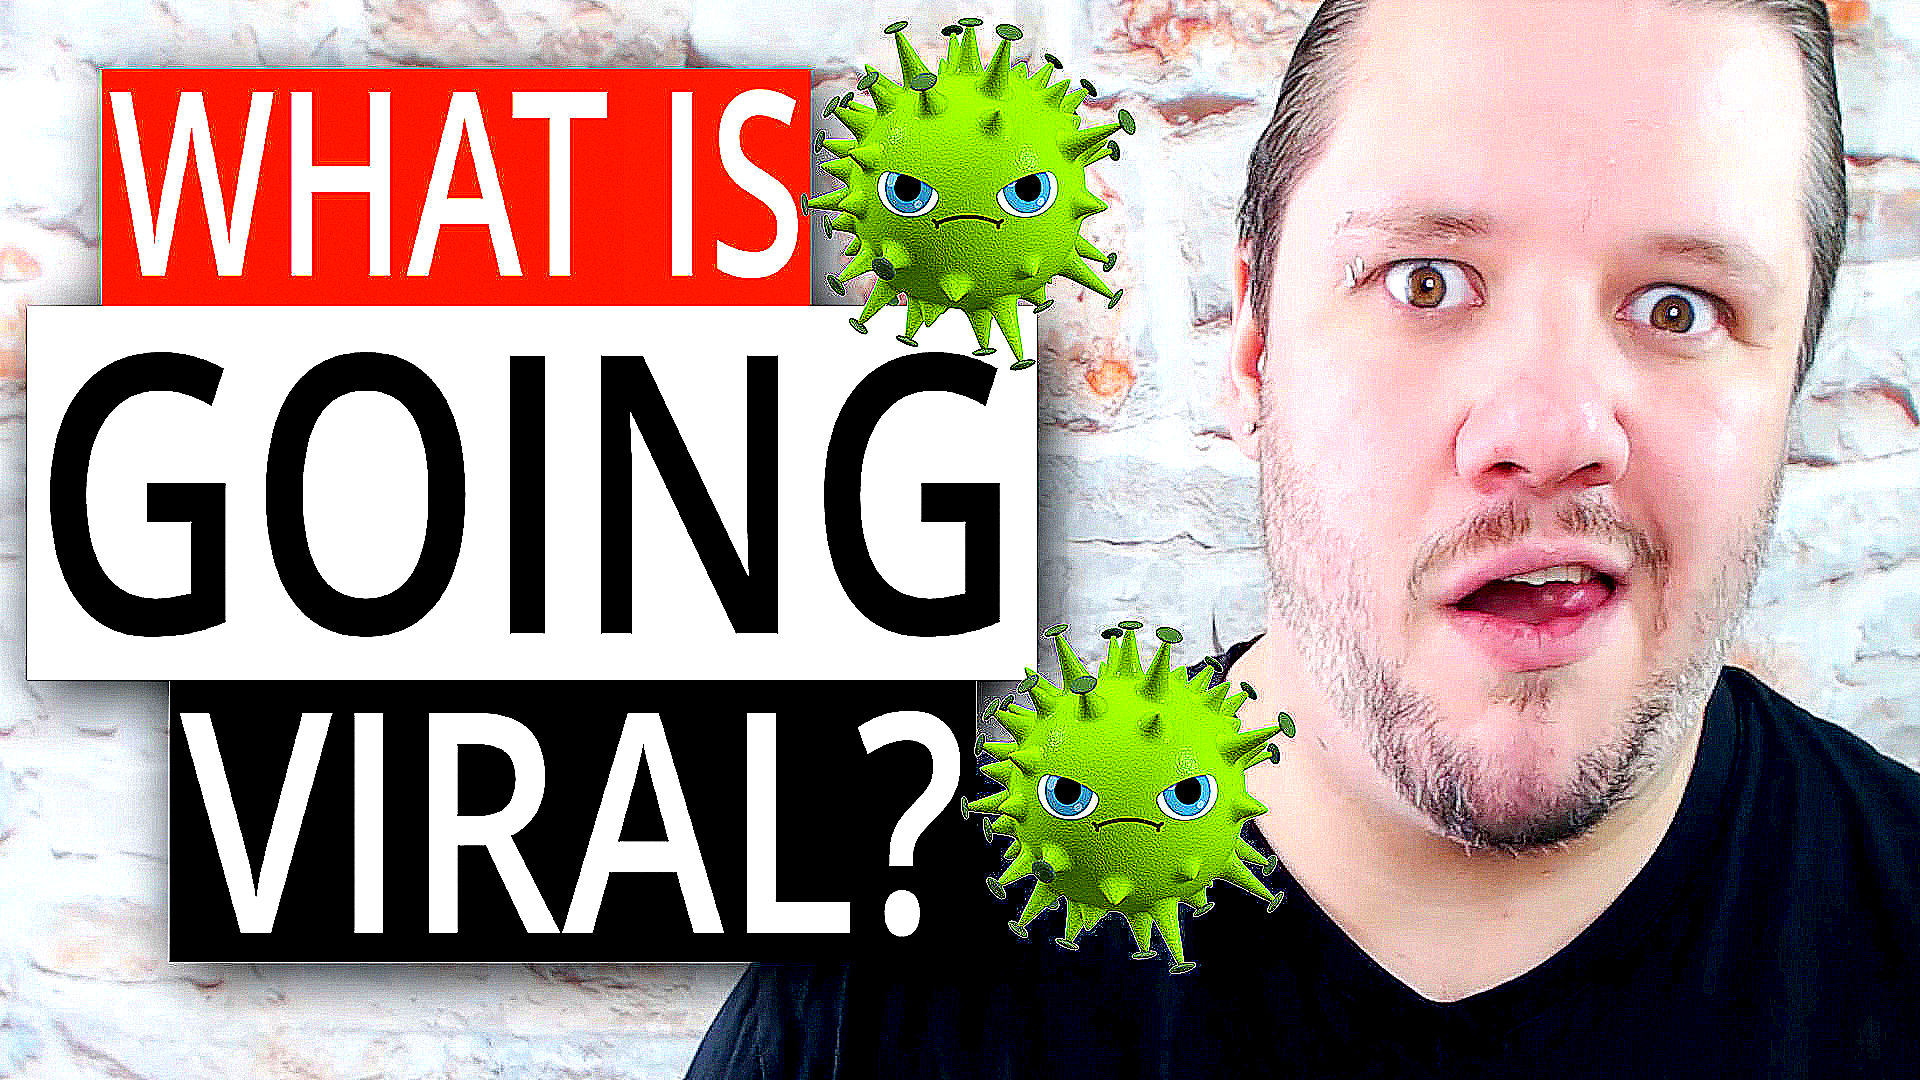 alan spicer,alanspicer,youtube tips,youtube tricks,asyt,what is going viral?,am i going viral?,going viral,going viral on youtube,how to go viral on youtube,how to go viral,how to make a viral video,viral video,viral,vrial content,viral media,media,youtube,spicer,youtube tutorial,how to,how to go viral on youtube 2017,how to go viral on youtube for free,virality